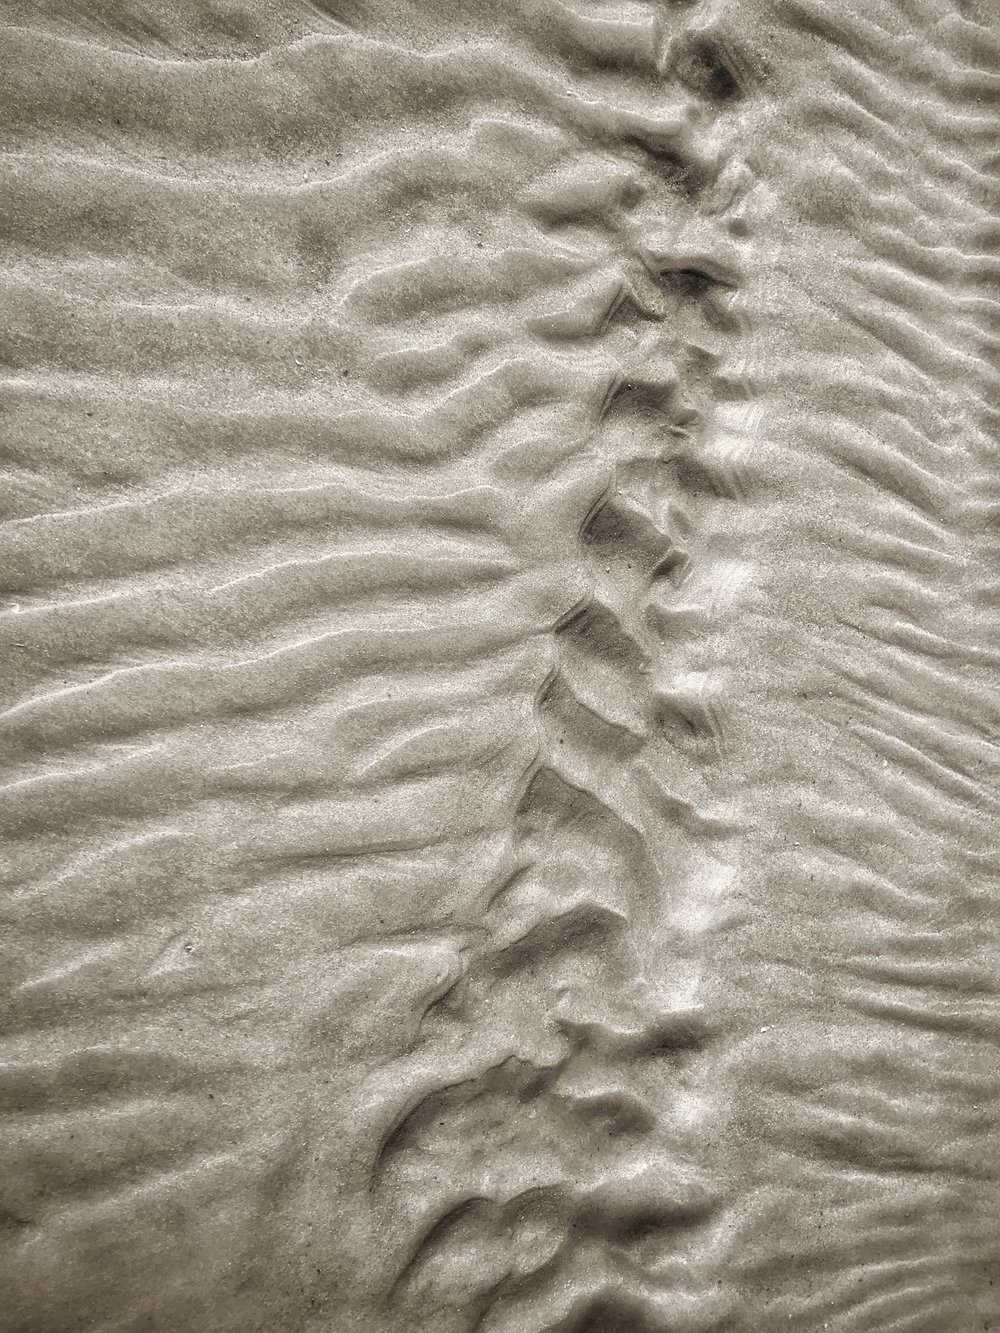 Spine In The Sand